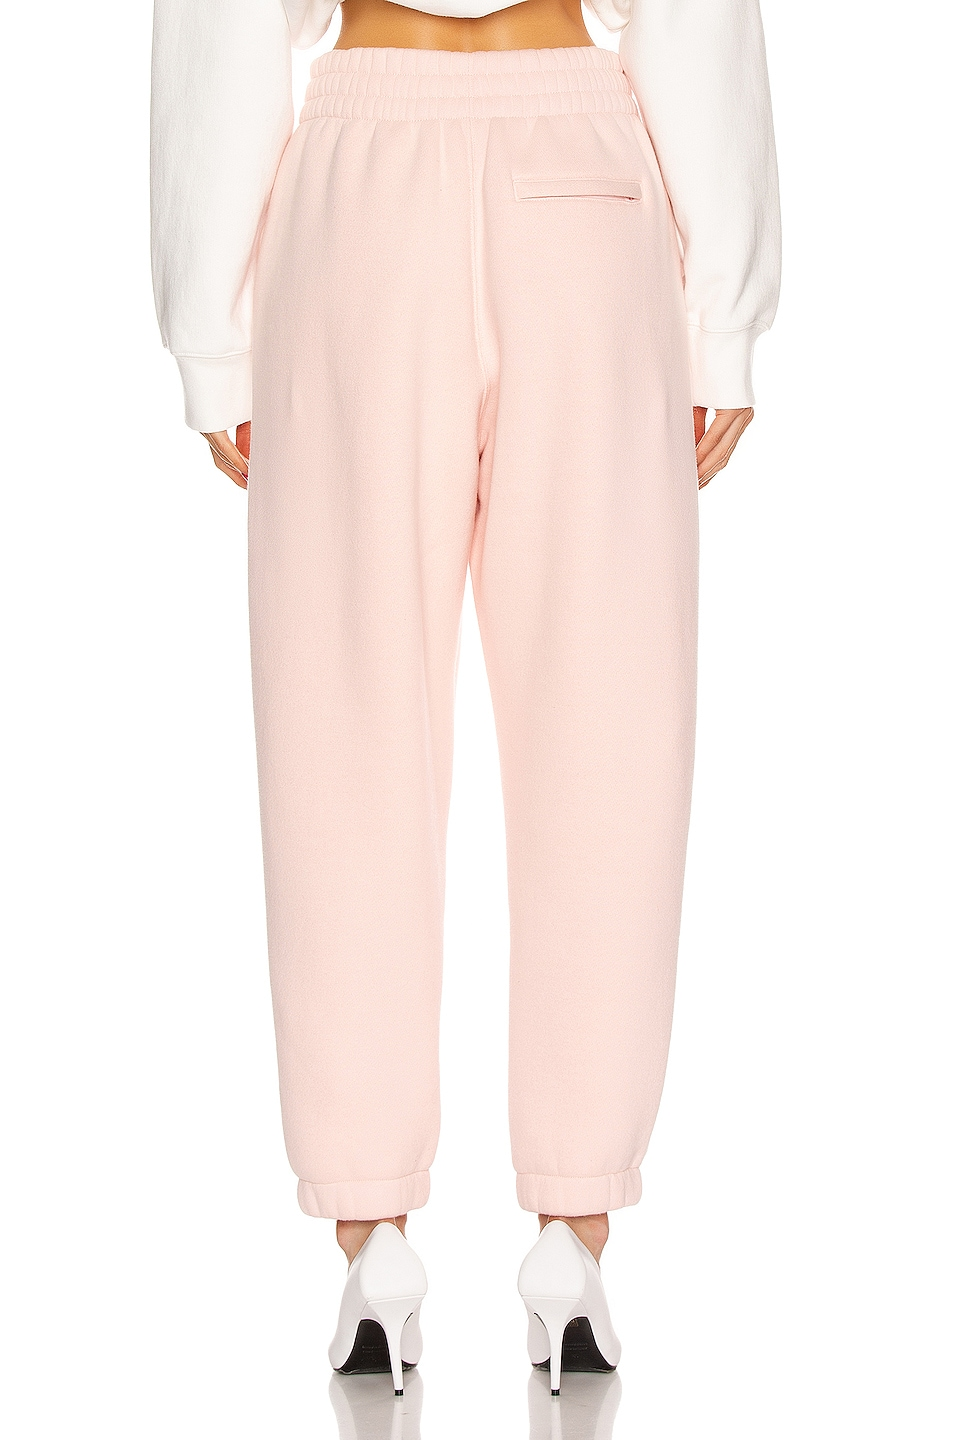 Image 3 of T by Alexander Wang Puff Paint Pant in Light Melon